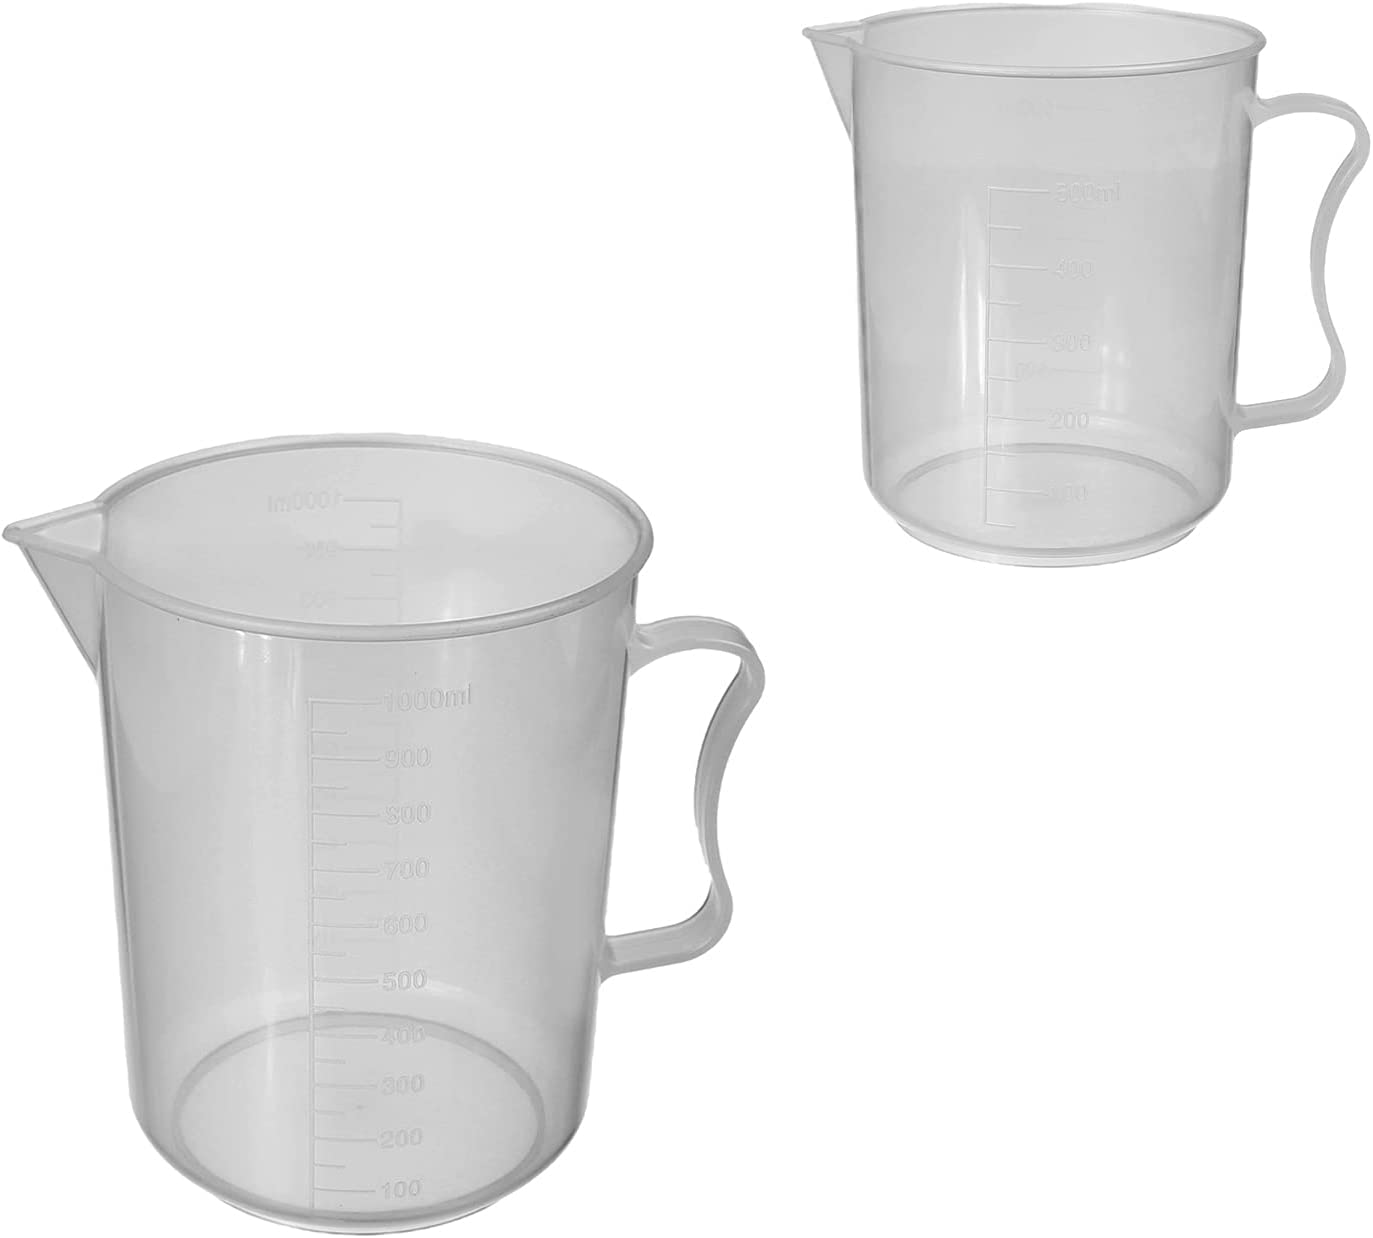 Cheap mail order sales Othmro Measuring Cup 500ml and PP Ranking TOP17 1000ml Plastic Beak Graduated